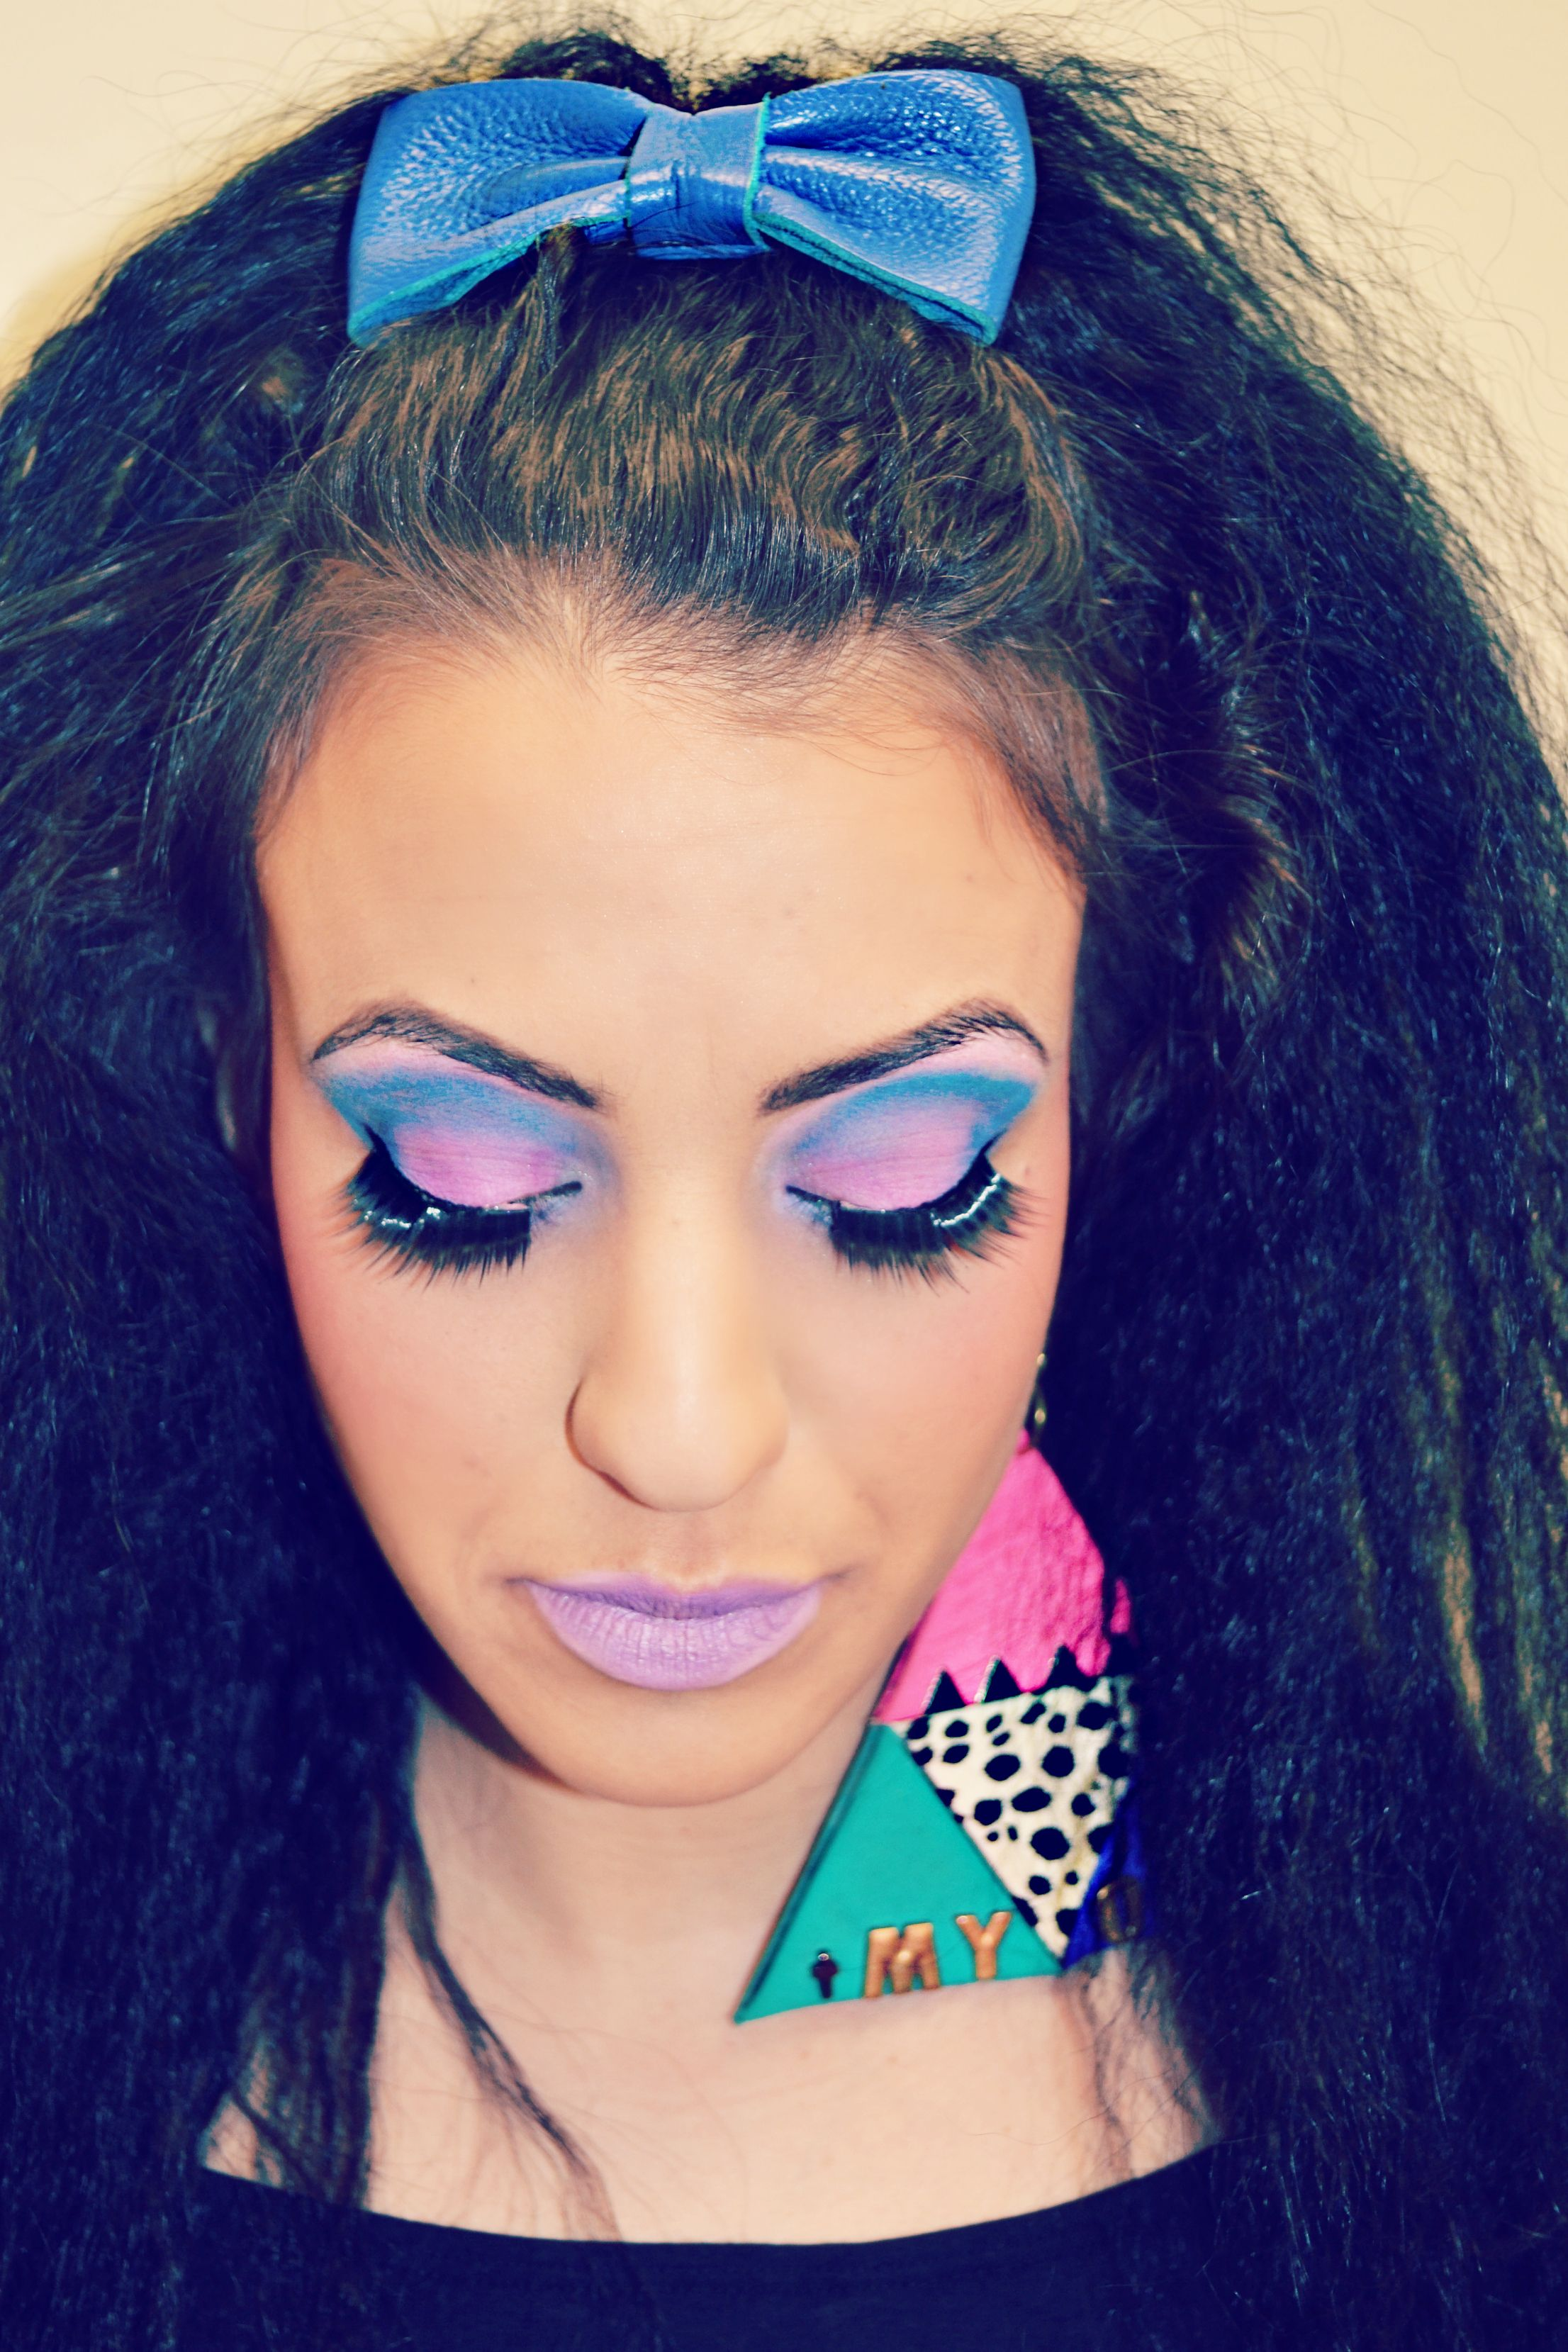 1980's makeup period style